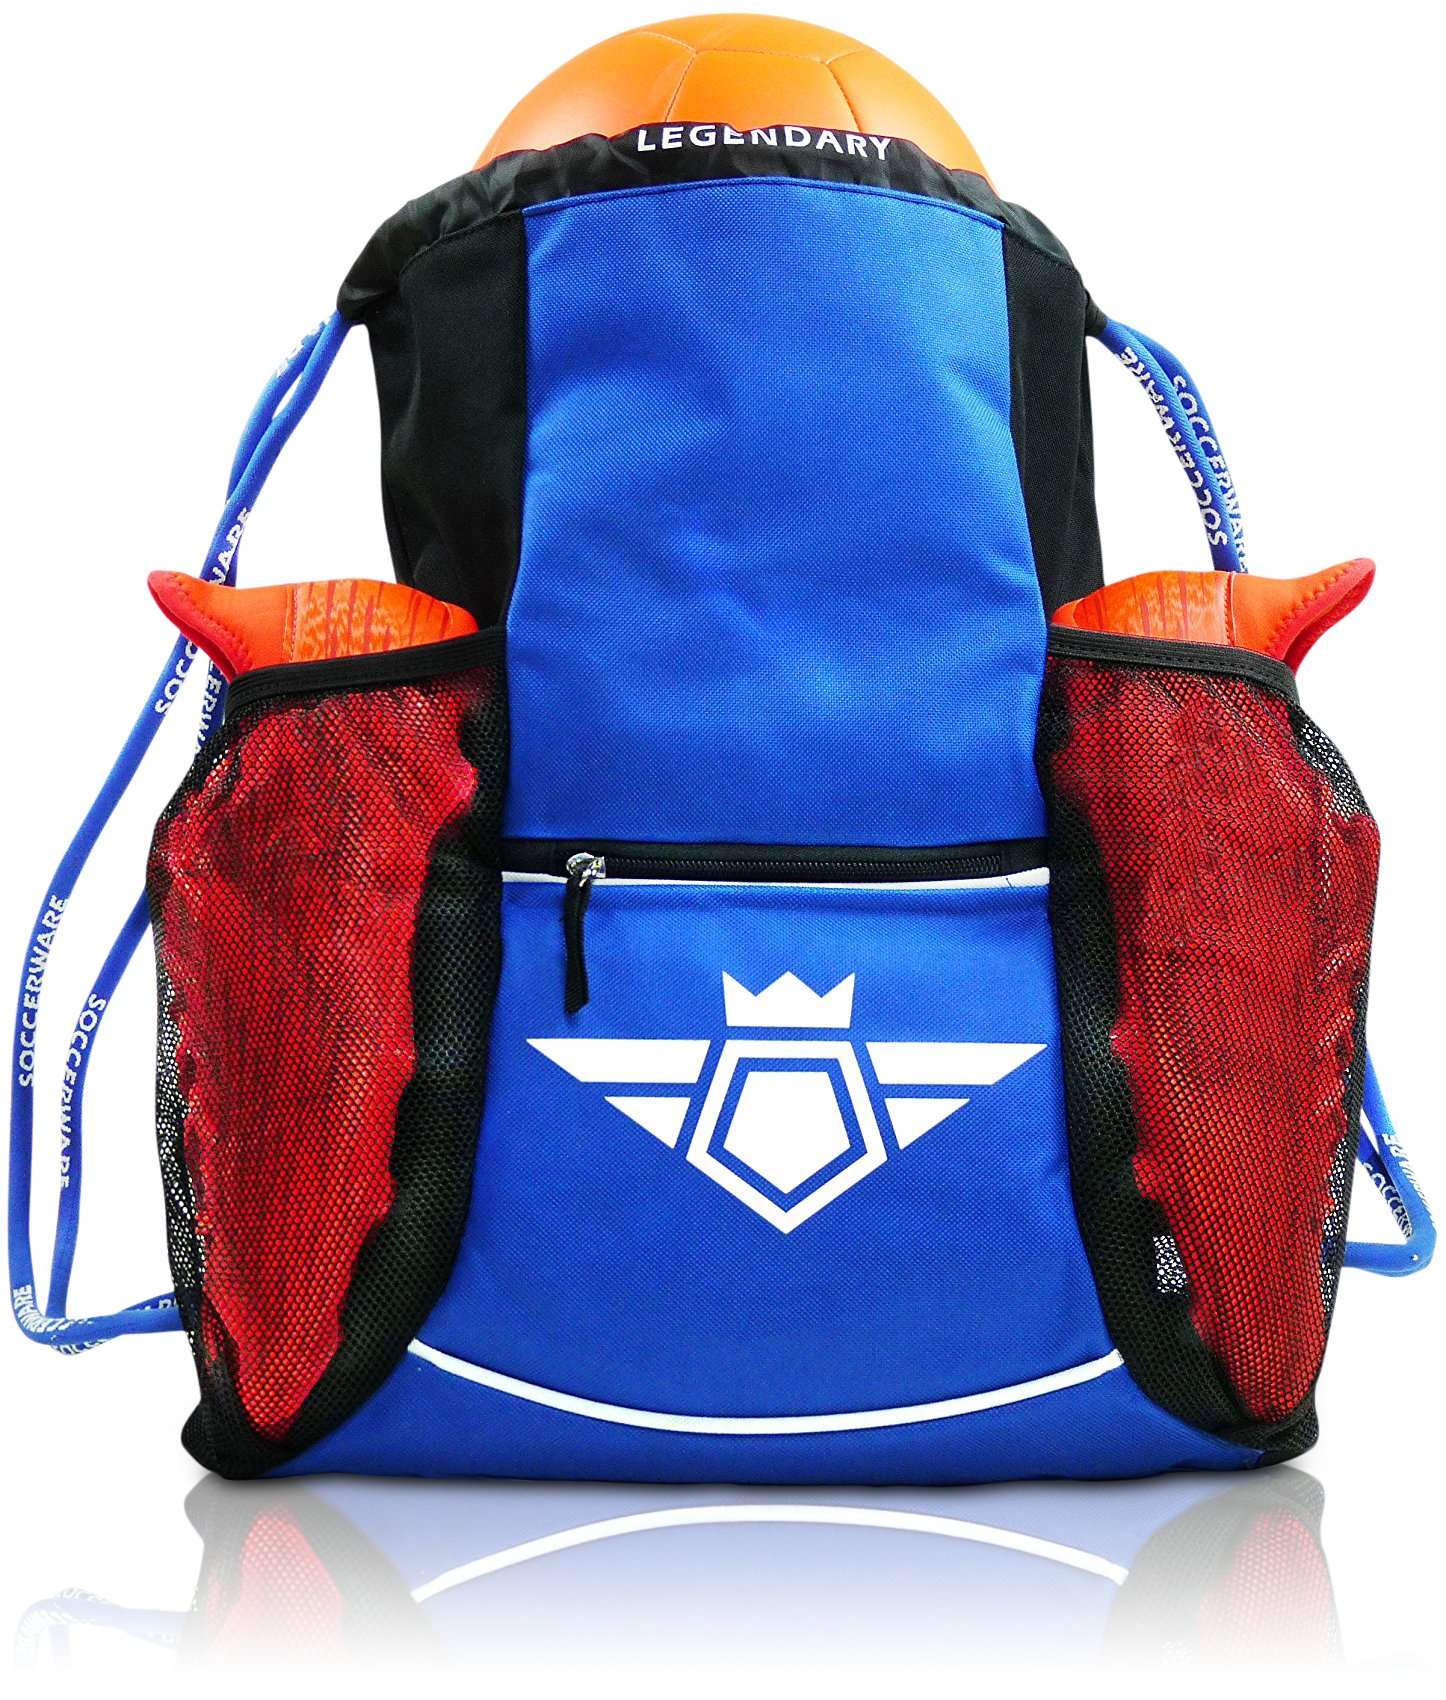 Soccer Bag Backpack - Organize Sports Gym Equipment - Boys Girls product  image 9c77c4be30728